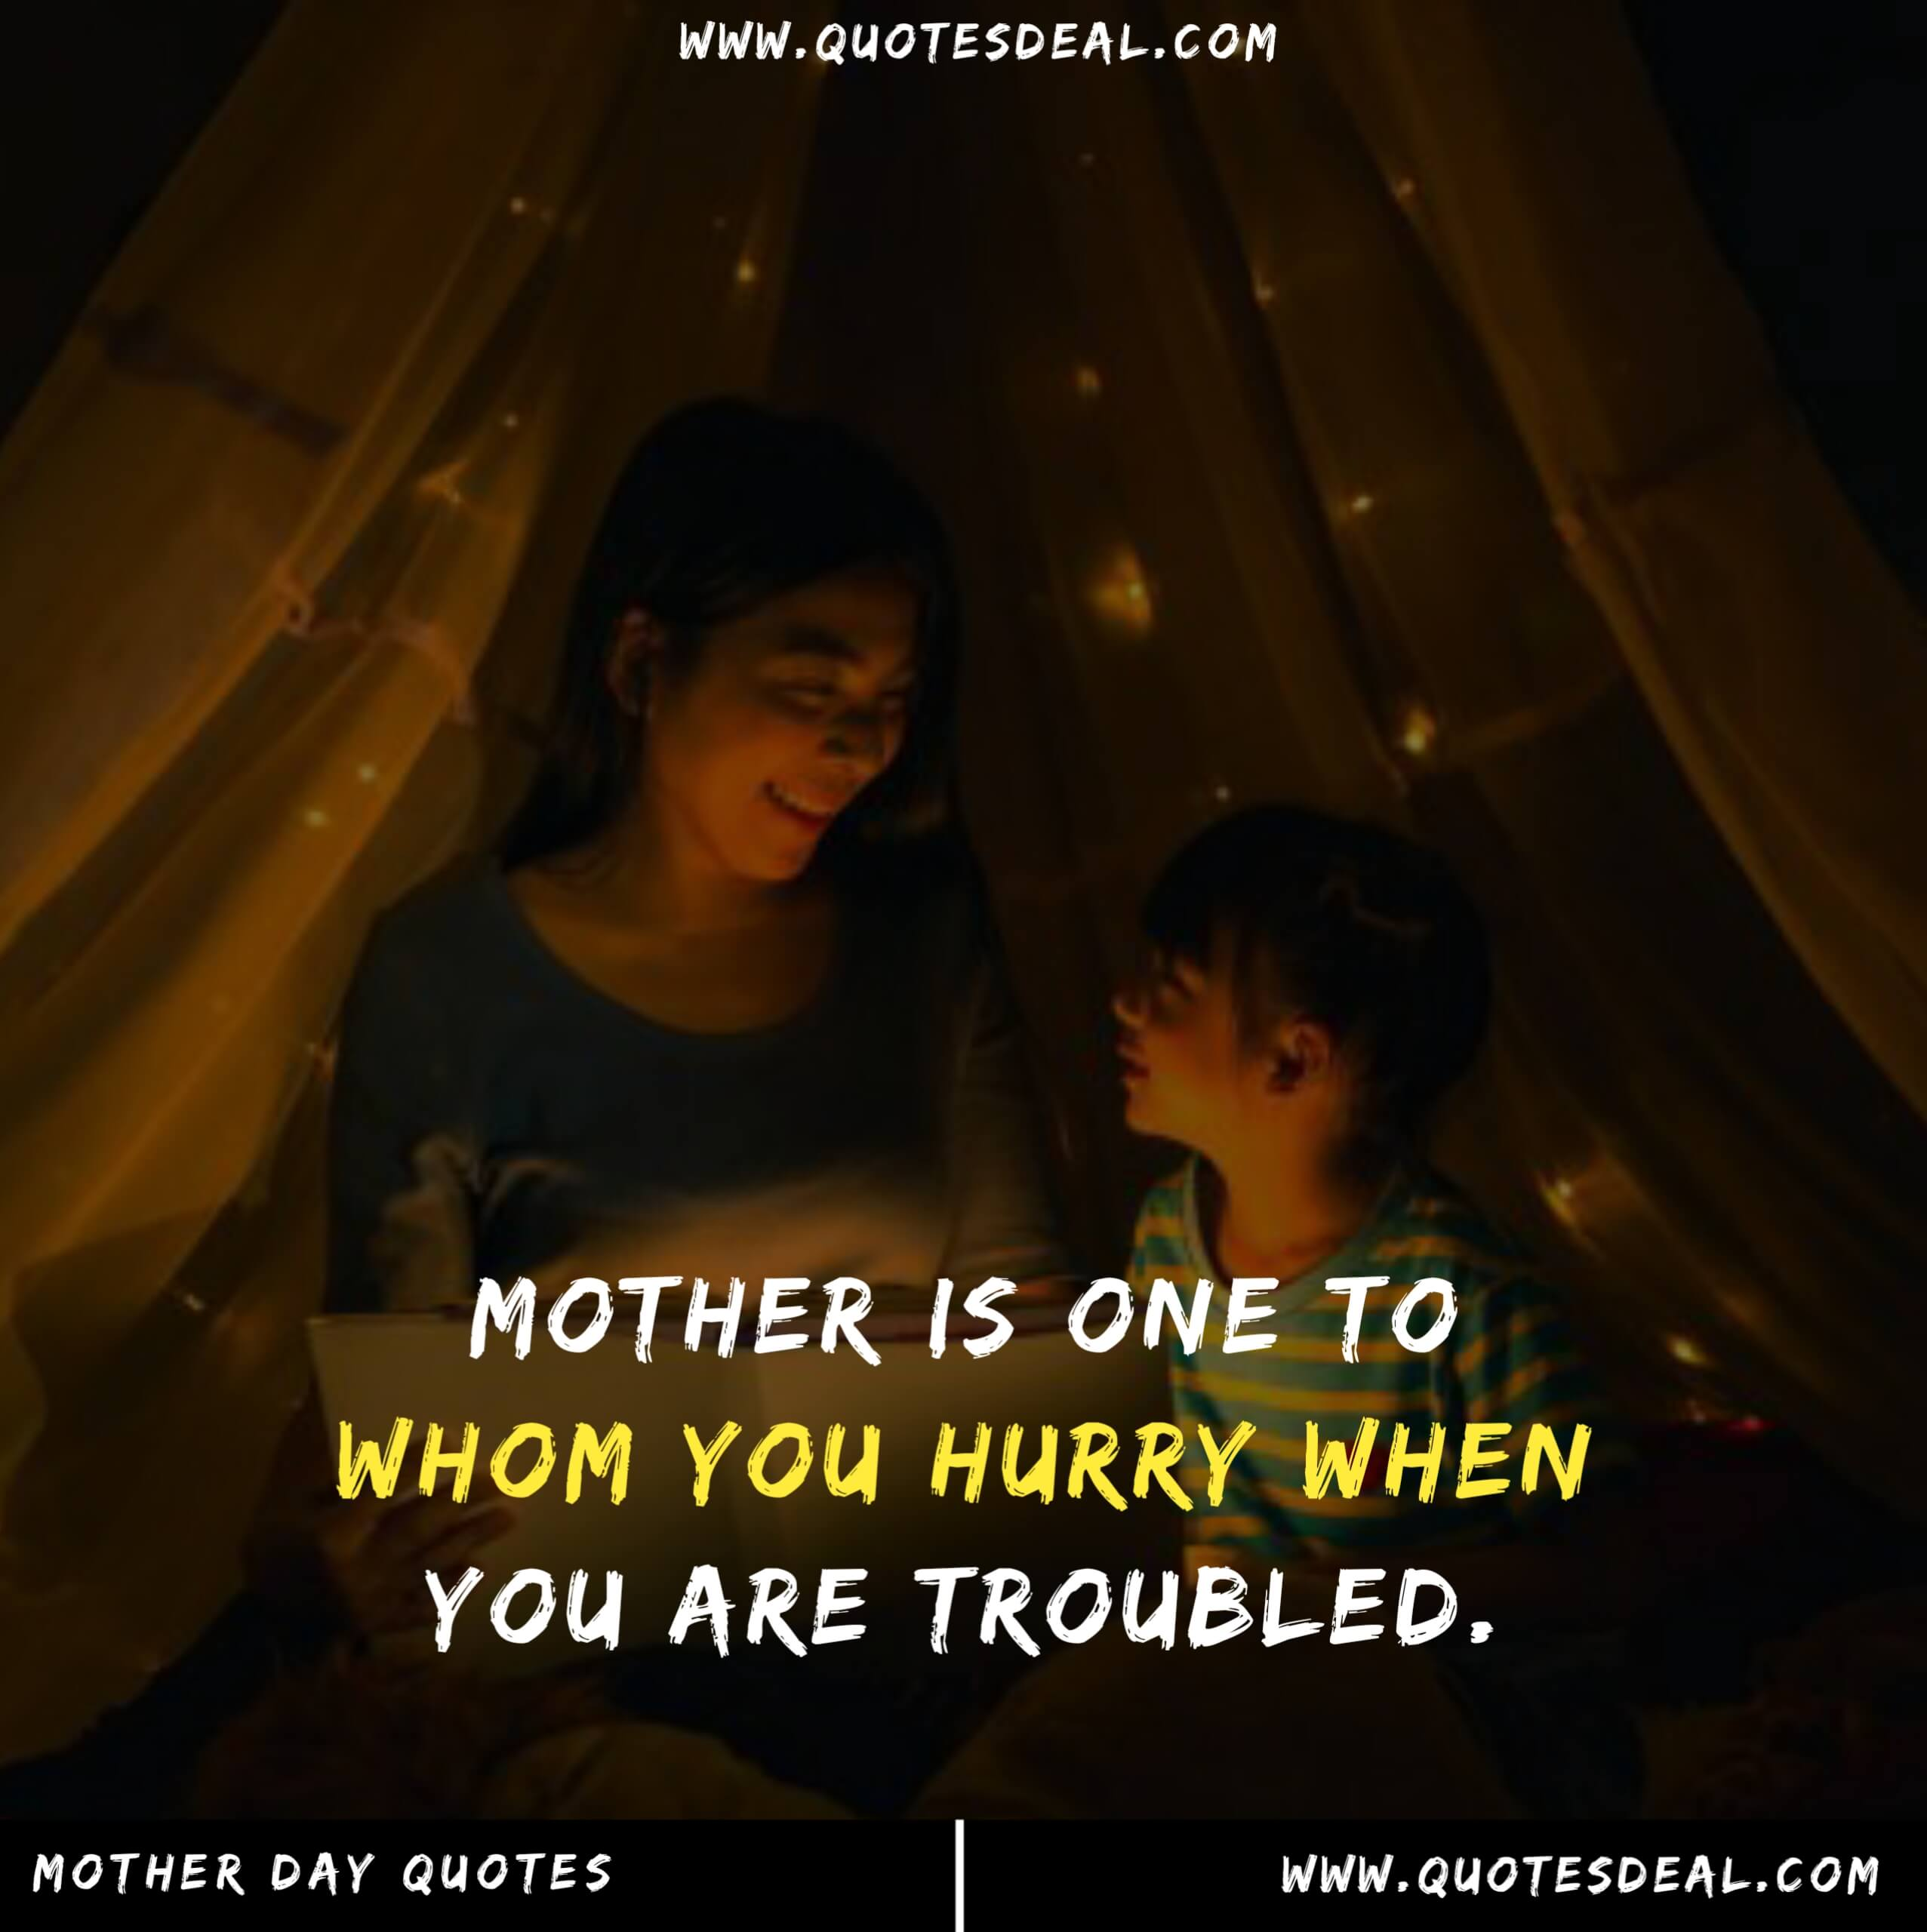 Mother is one